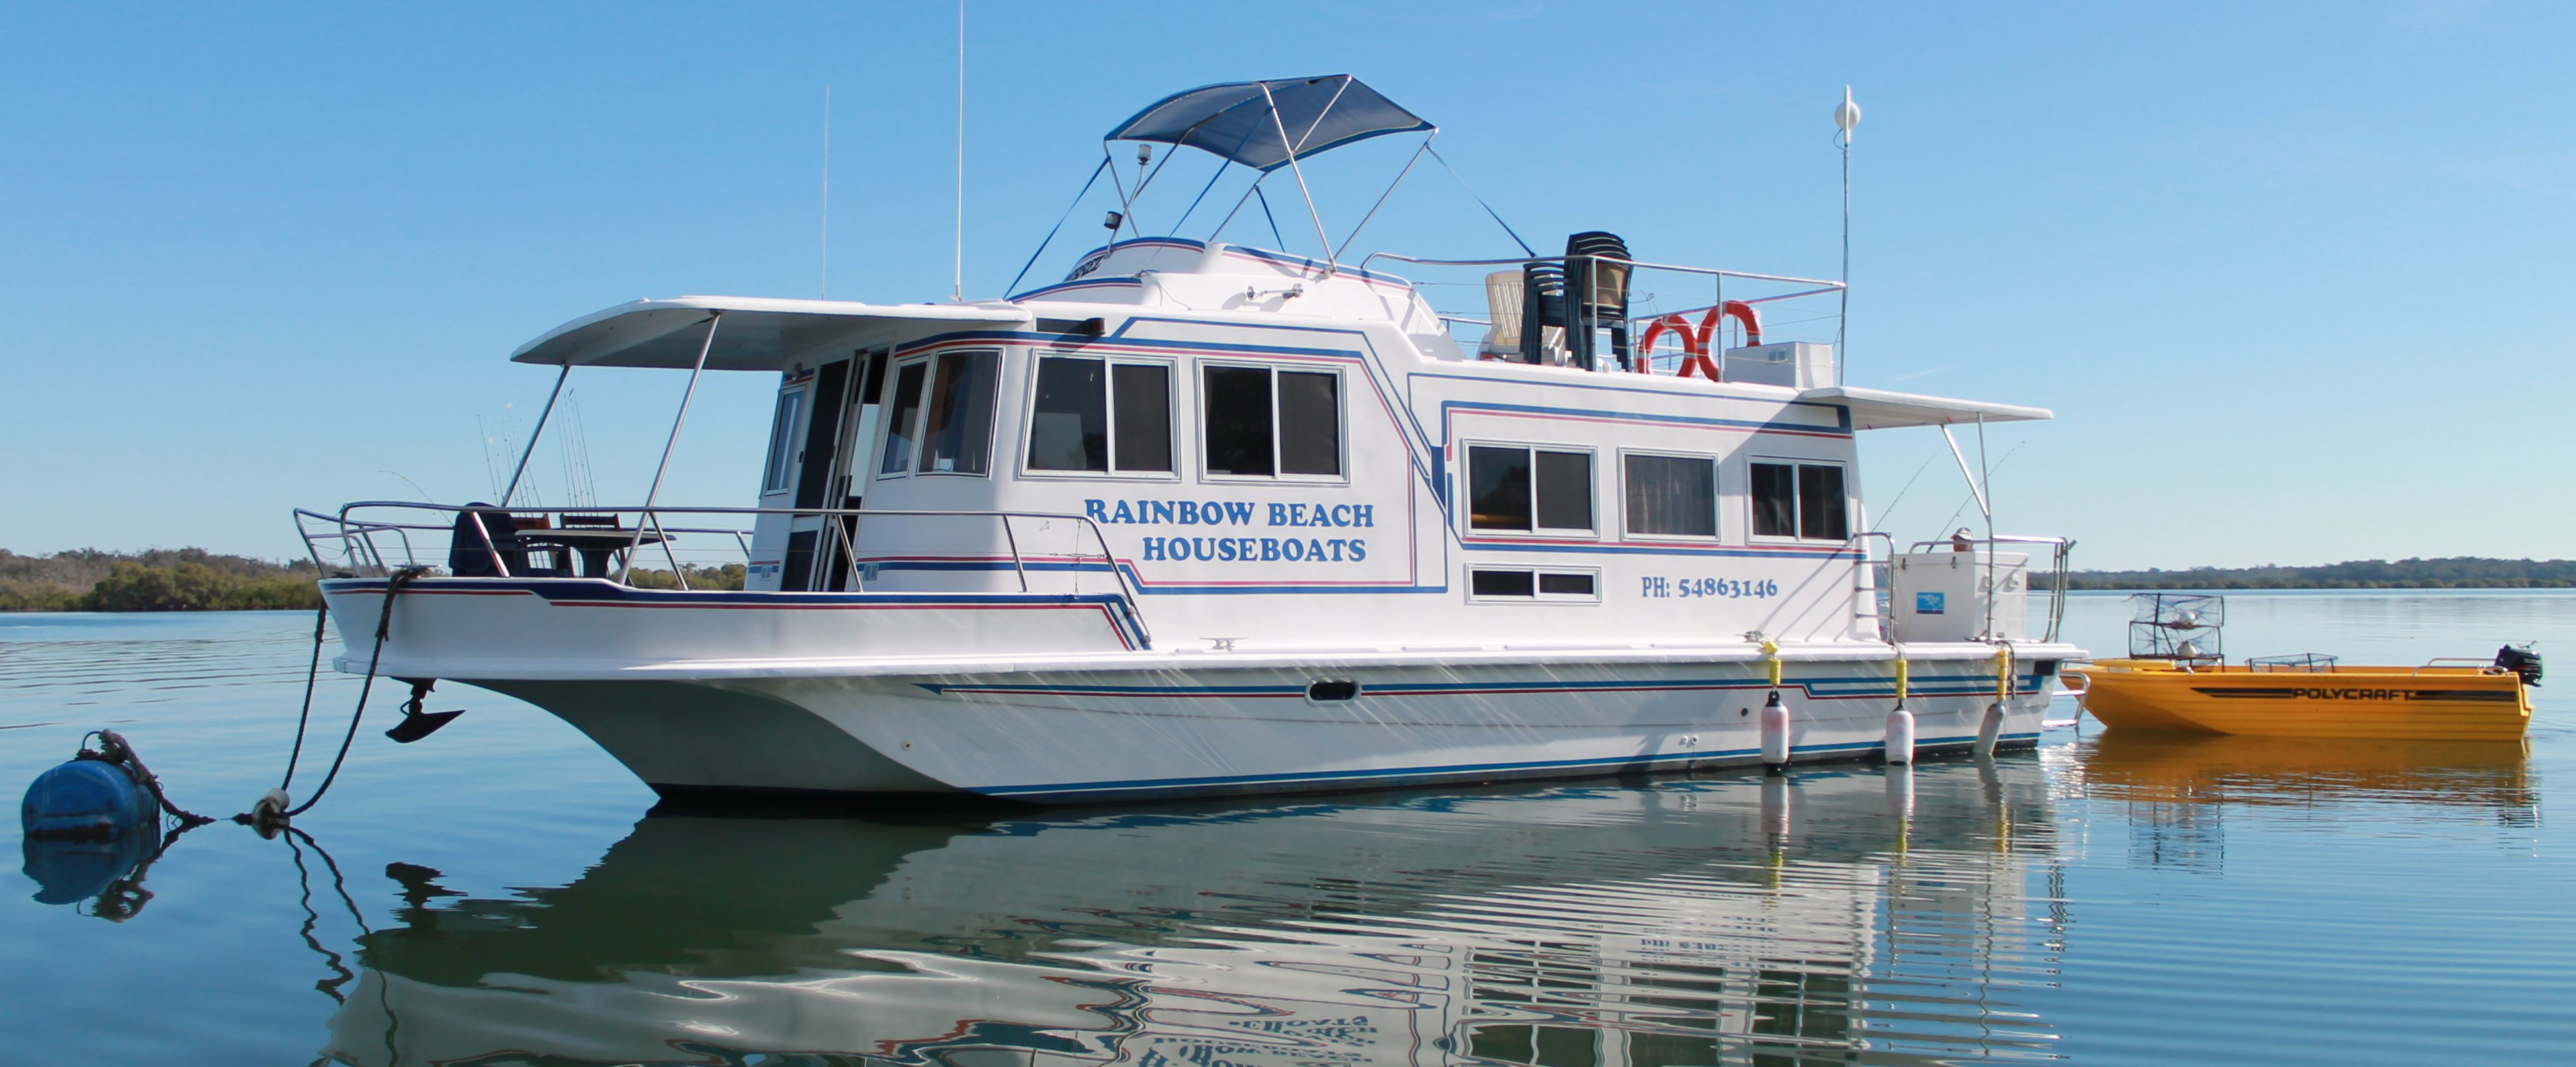 Pictures Of Houseboats Houseboat Hire Bucks Party Ideas And Weekend Activity Suggestions